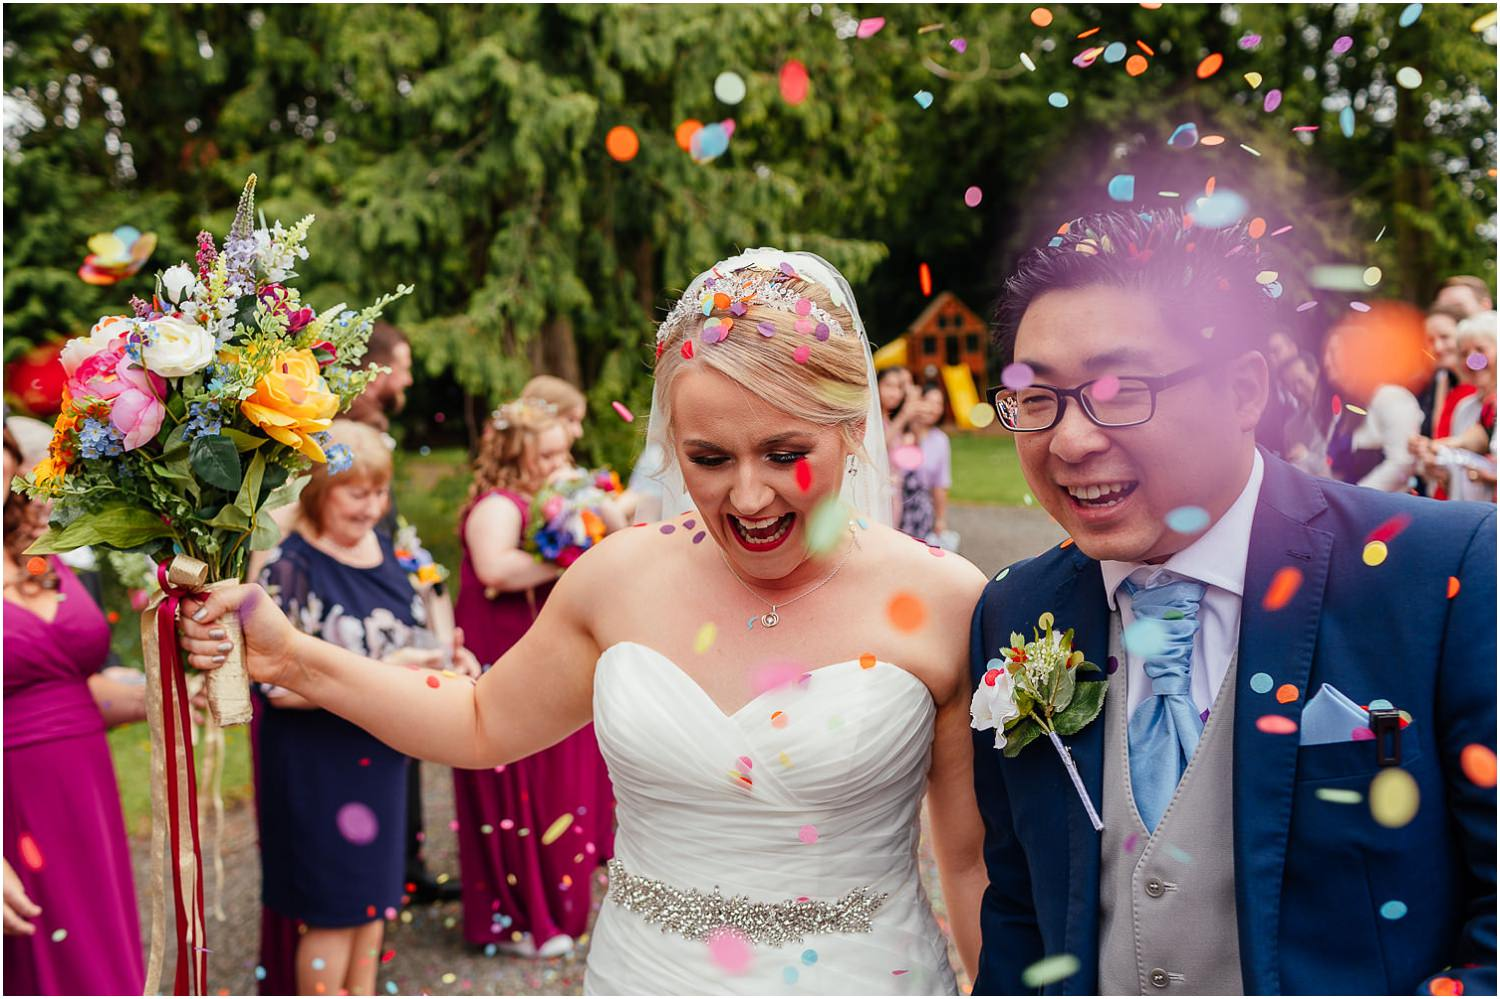 Cornhill Castle Wedding Groom Bride colourful confetti Photo Chinese Scottish Wedding